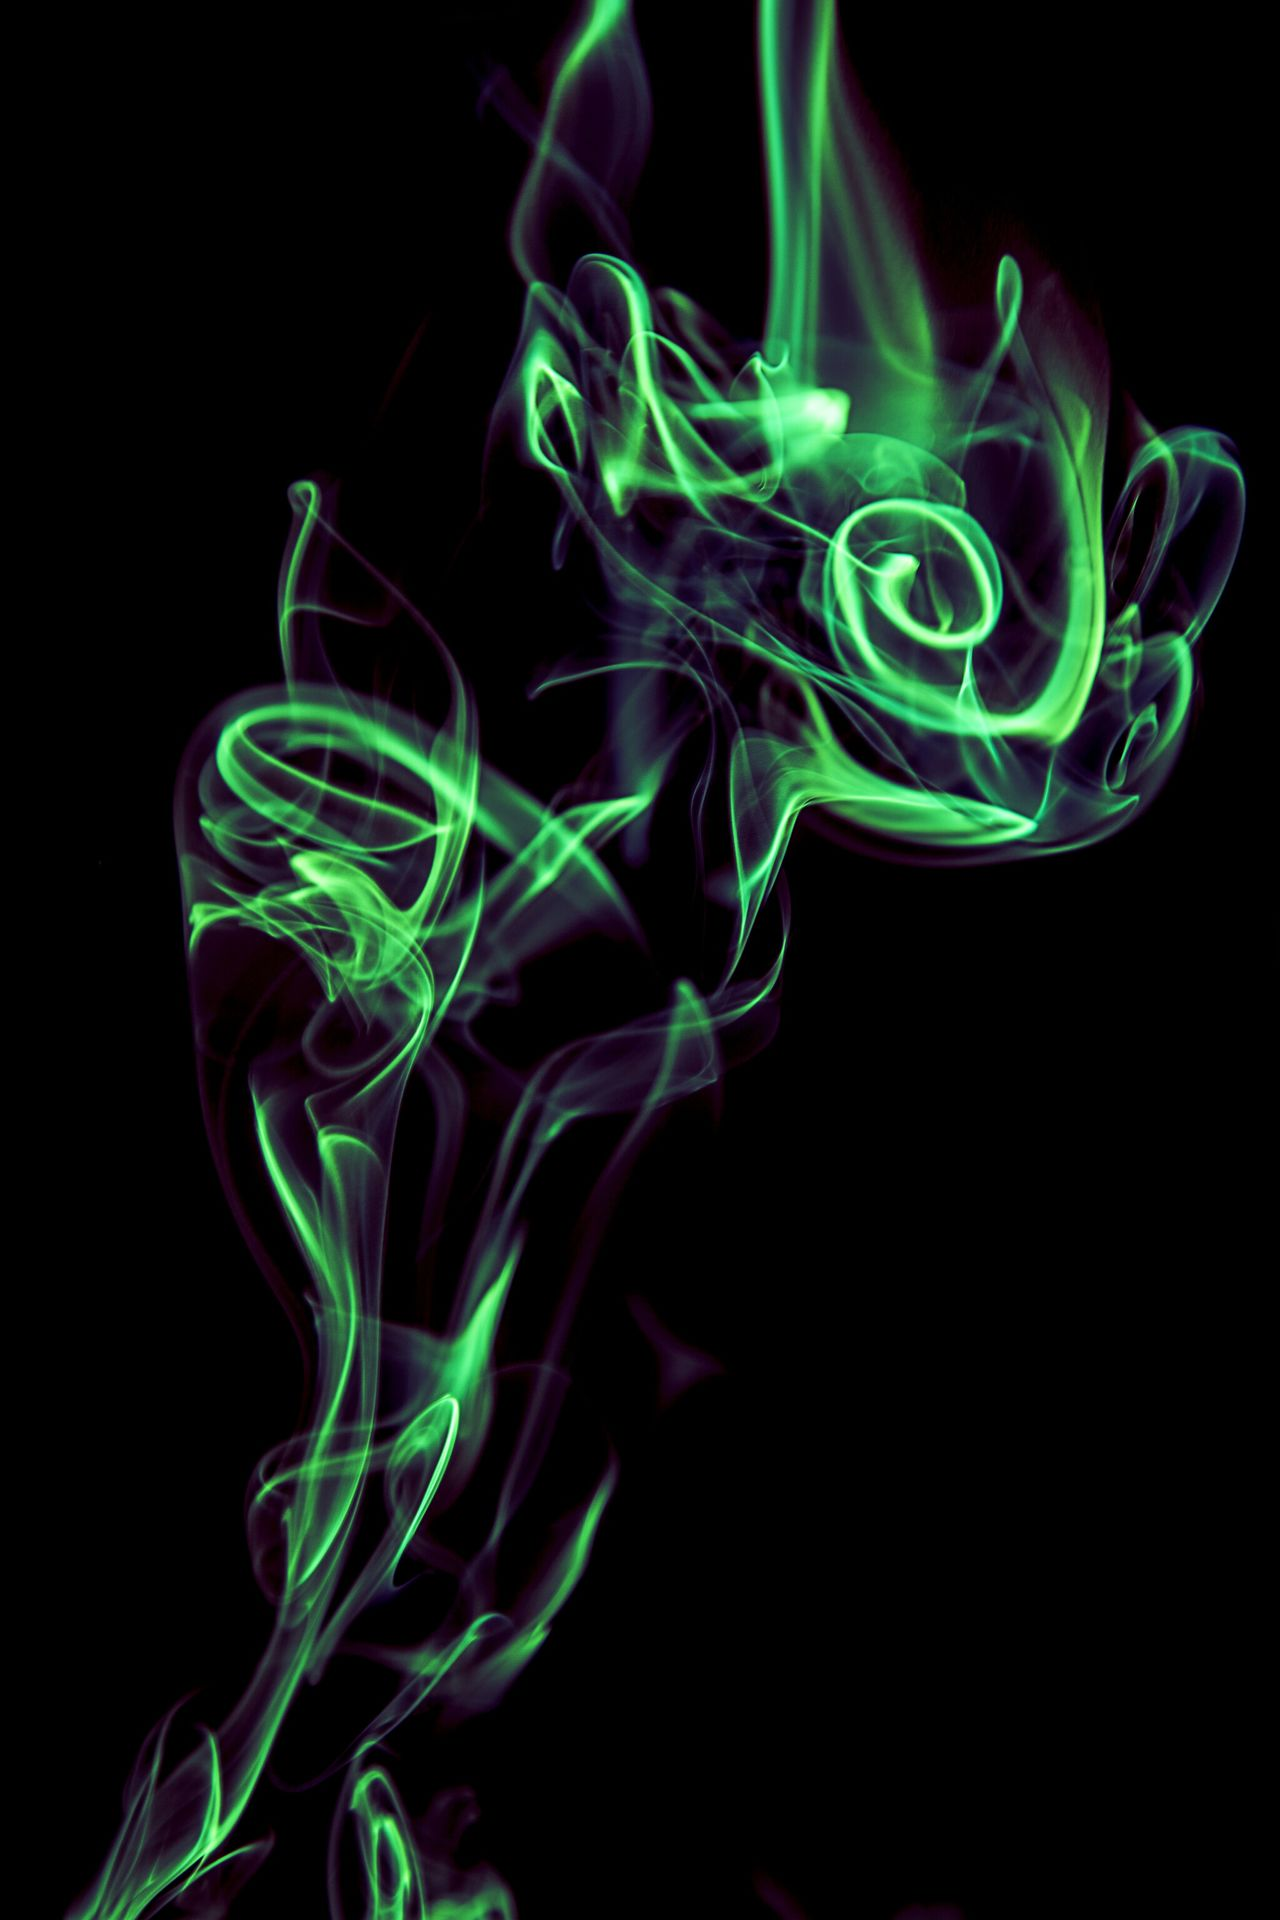 EyeEm Neon Smoke Green Green Color Textures Textured  Isolated Black Background Blue Shapes Isolated Smoke Colored Smoke Smoke Tricks Smoked Smoker Smoke Time